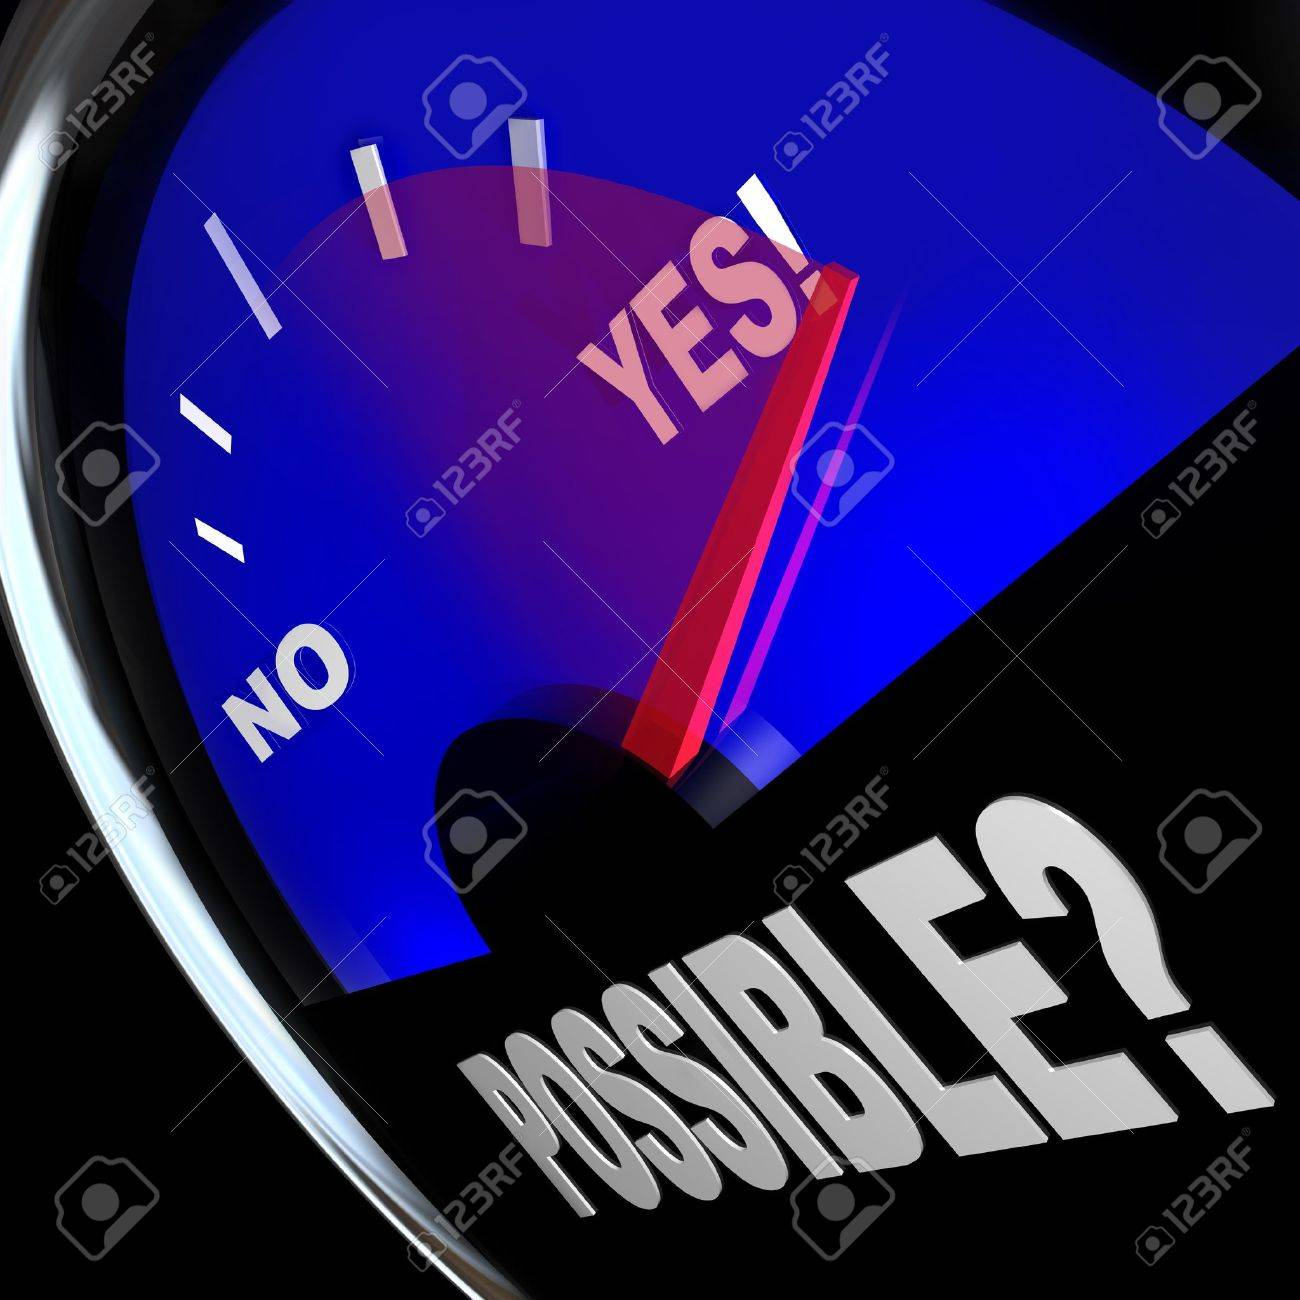 The word Possible on a speedometer with needle racing past No word to point to Yes, a successful outcome or answer to opportunity and possibilities in life, work or career Stock Photo - 14877201